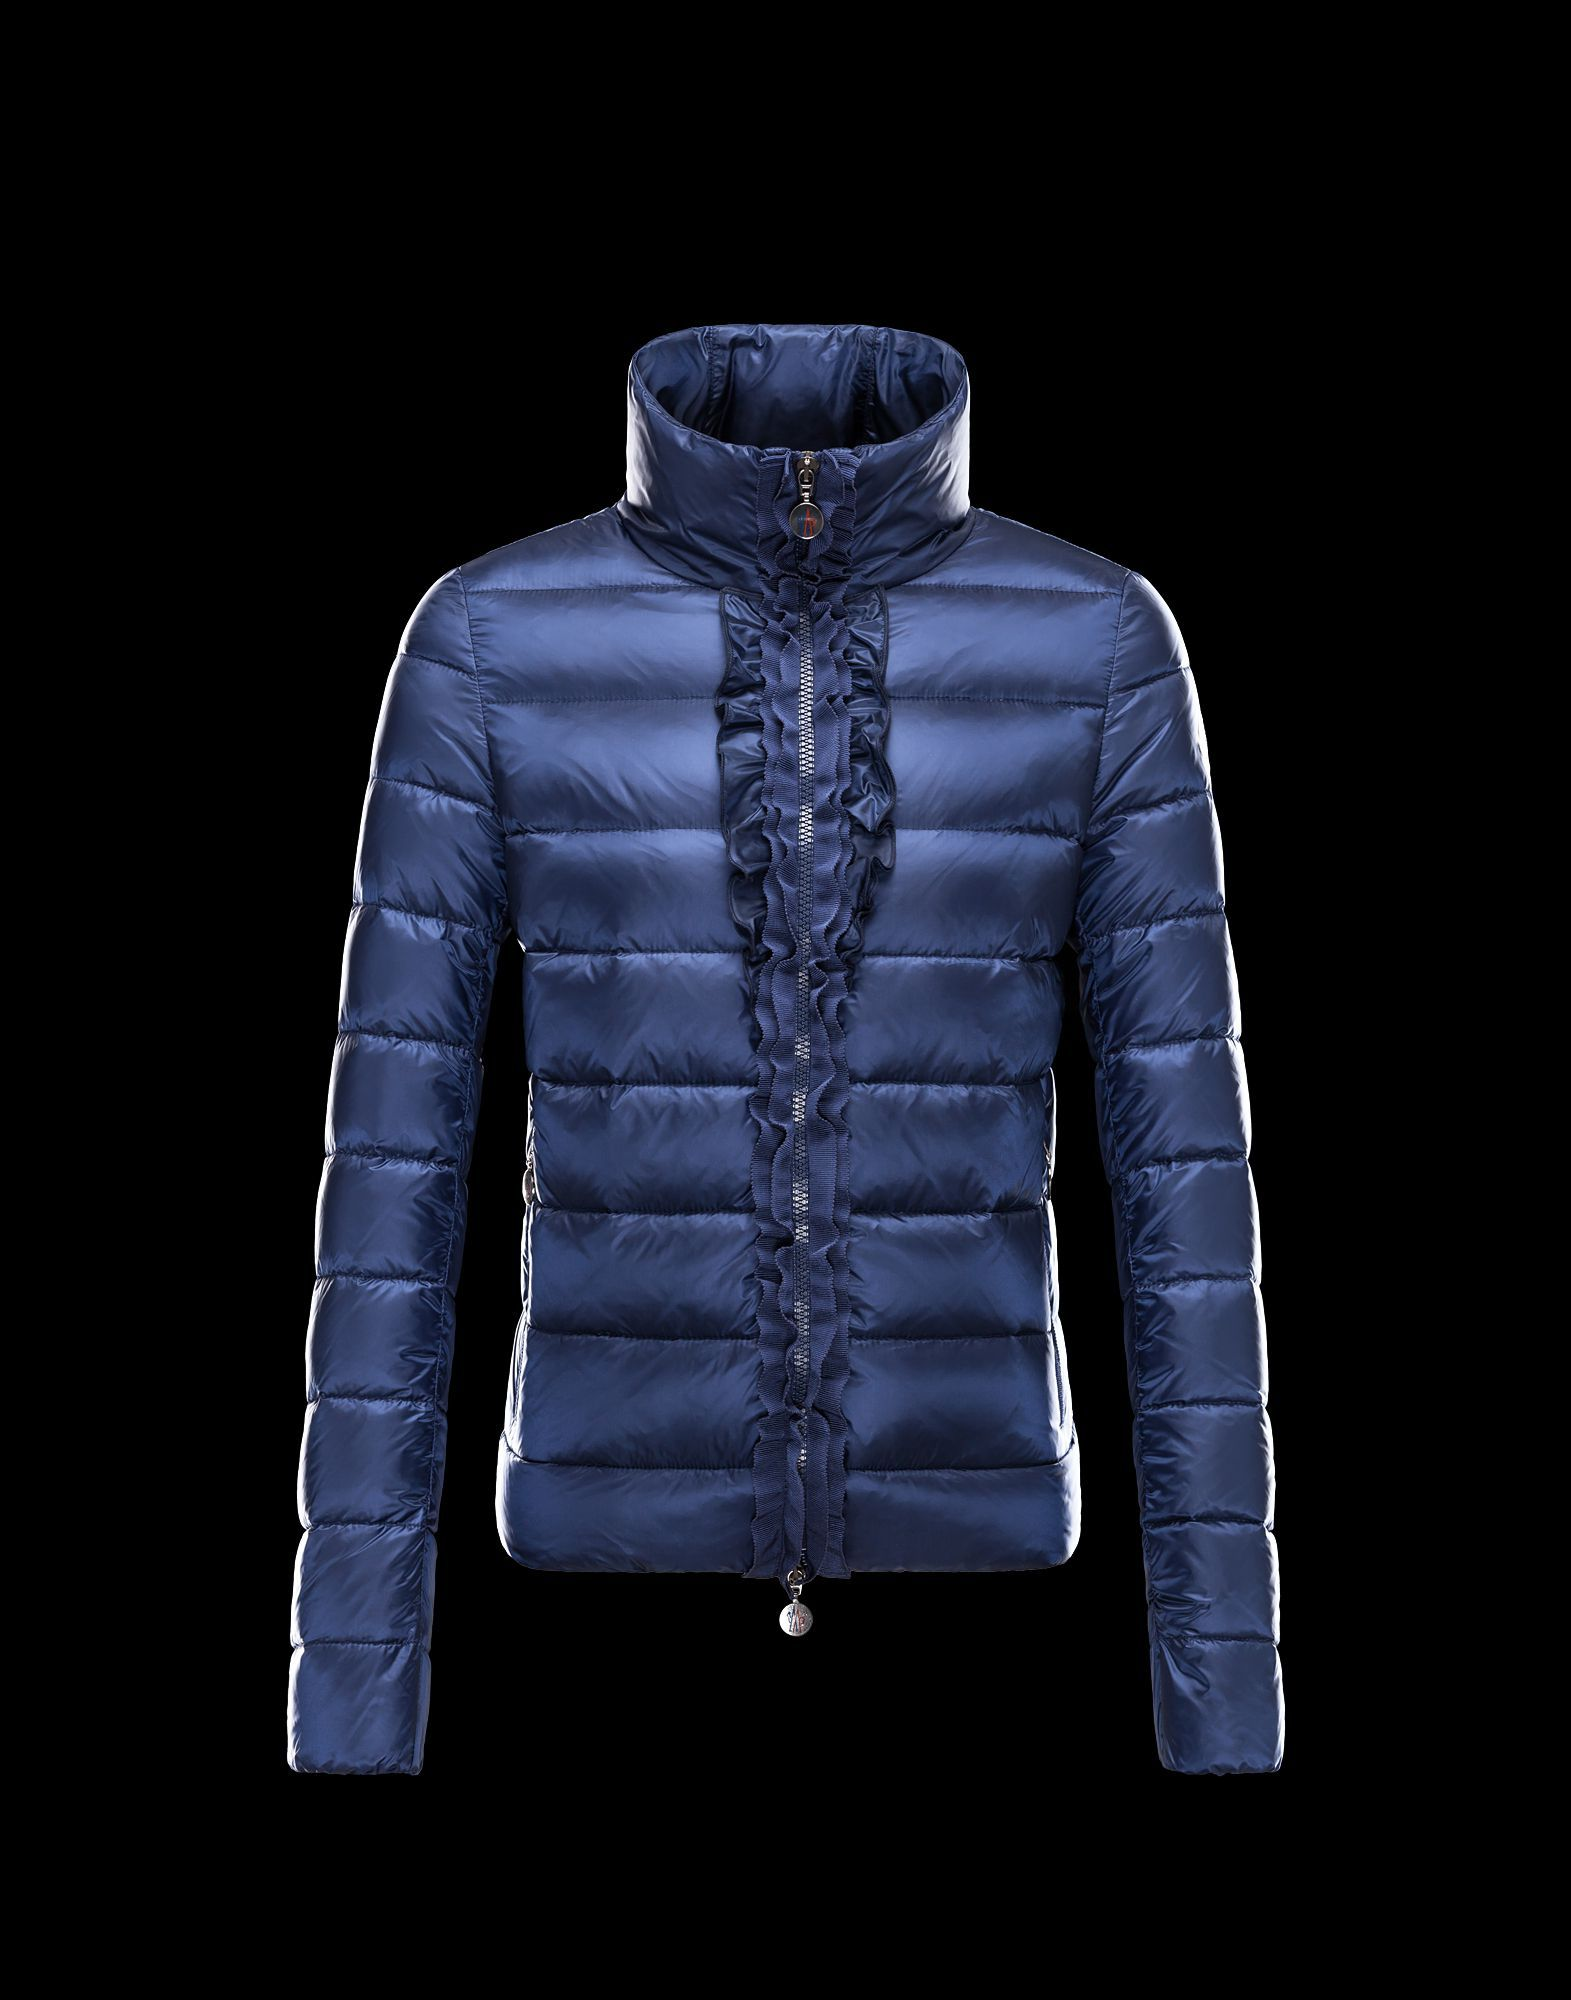 2013 New! Moncler OXALIS Down Jackets Womens Collar Blue! Only $239.9USD